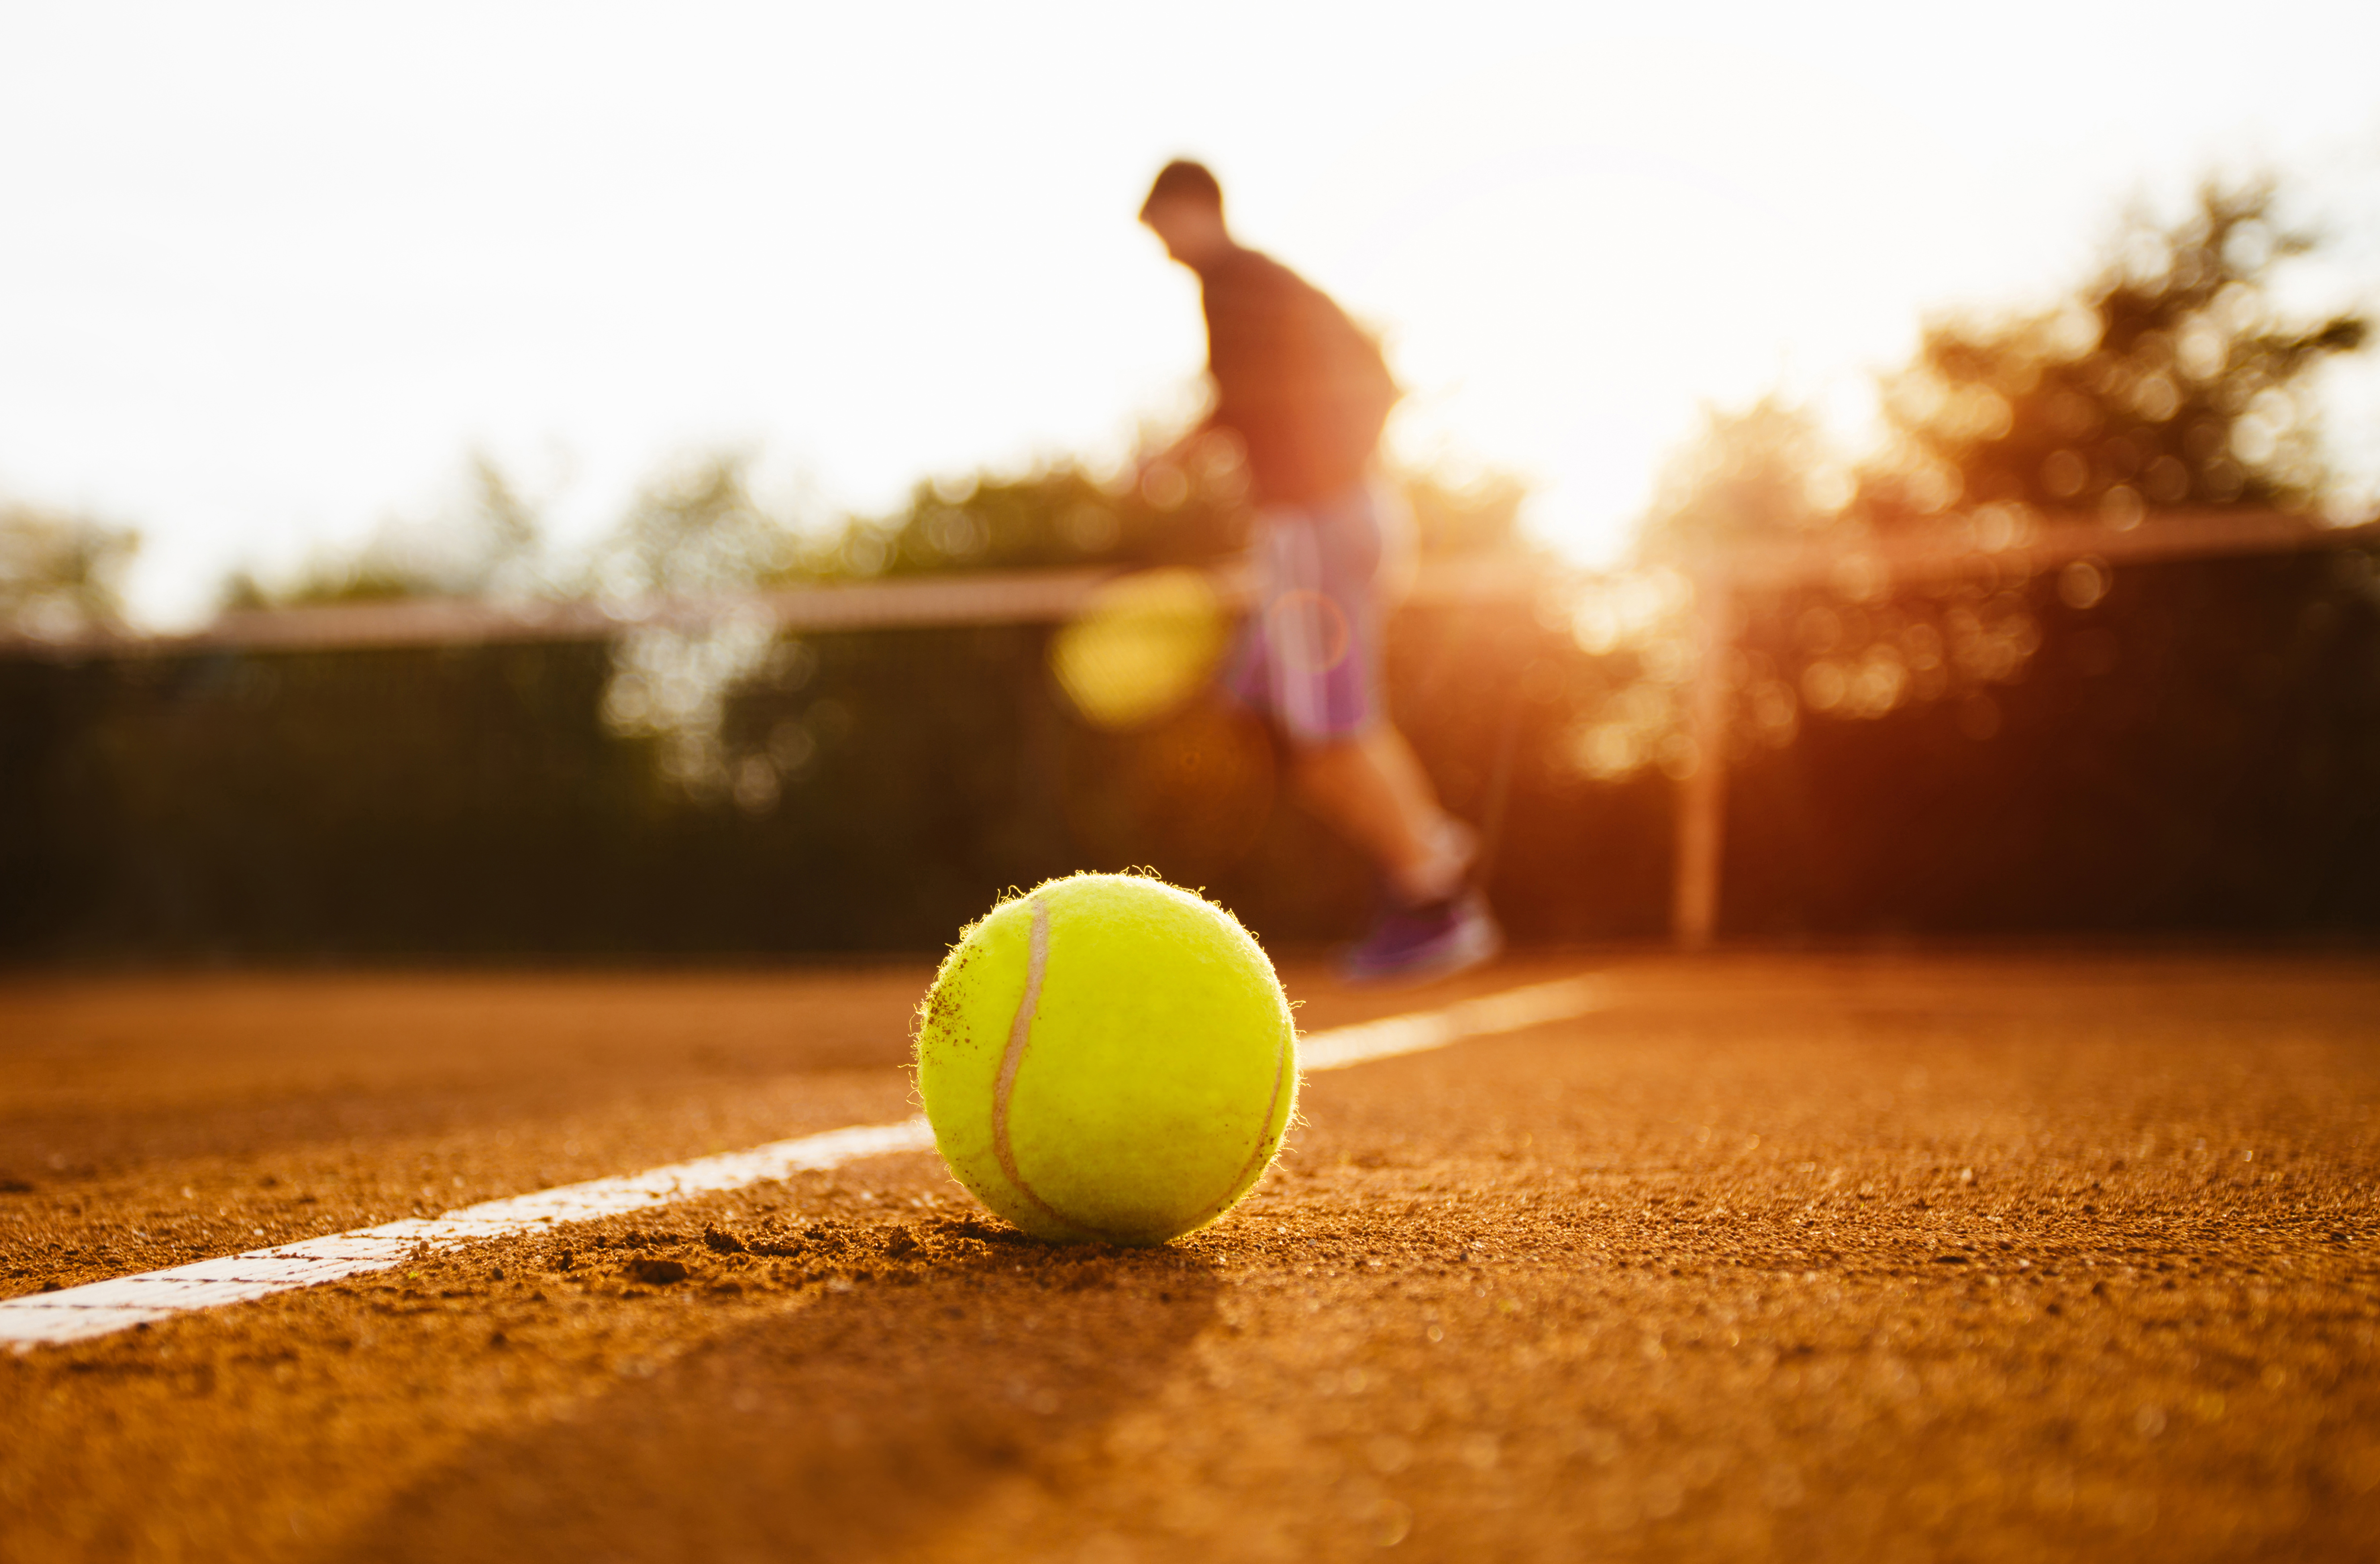 Challenge your family to a round of tennis